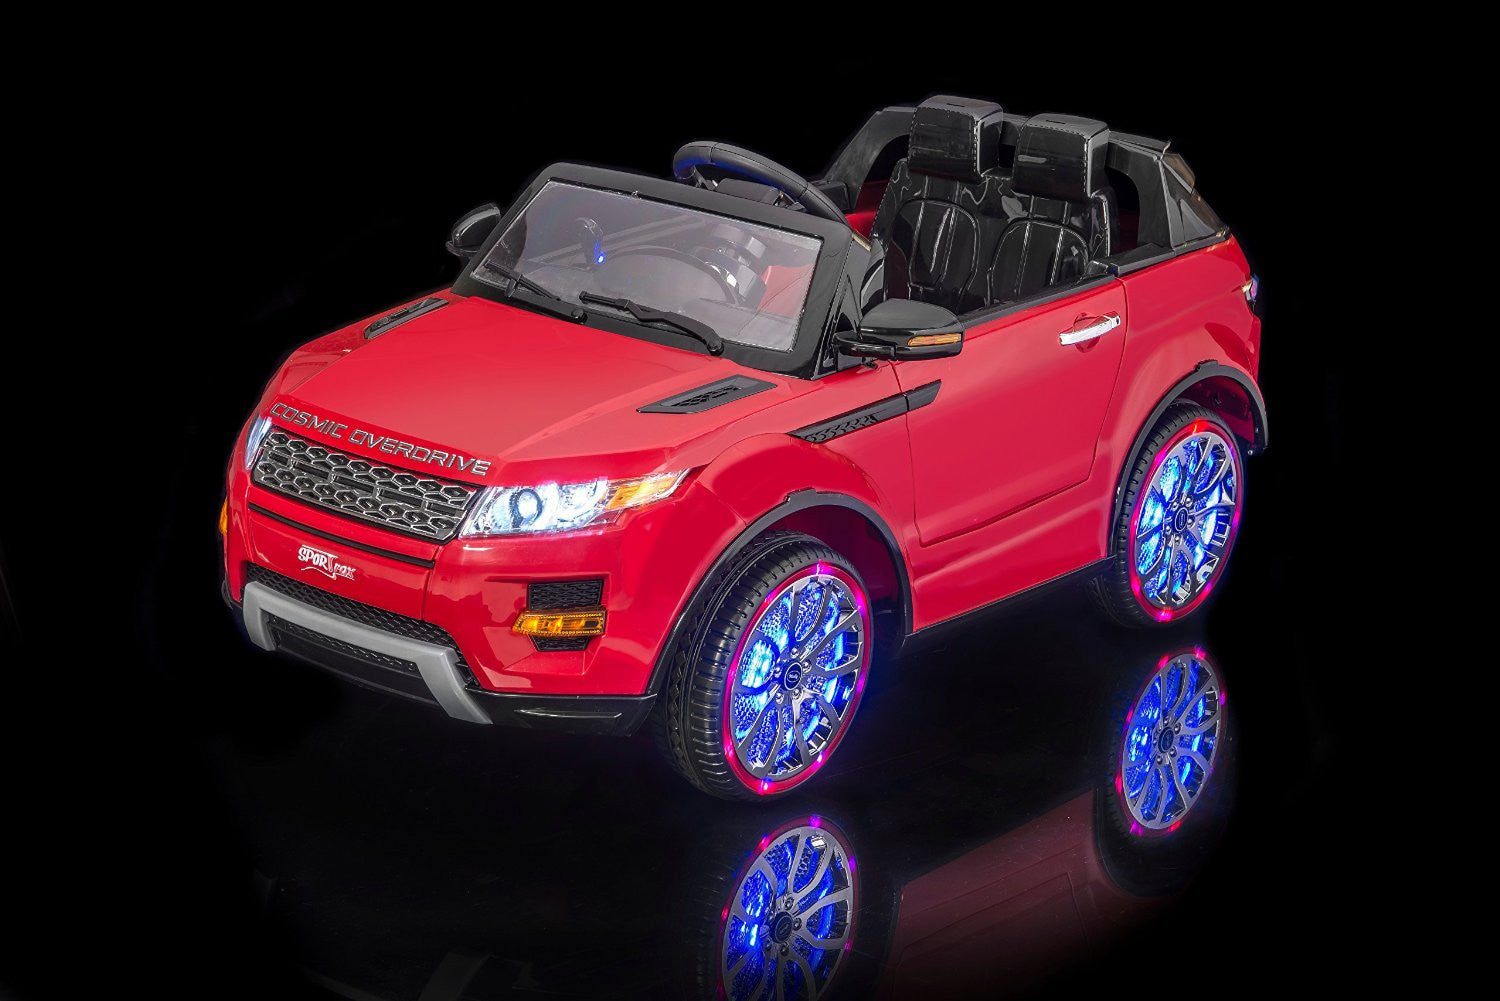 Range Rover Style 12V Ride On SUV with Remote Control